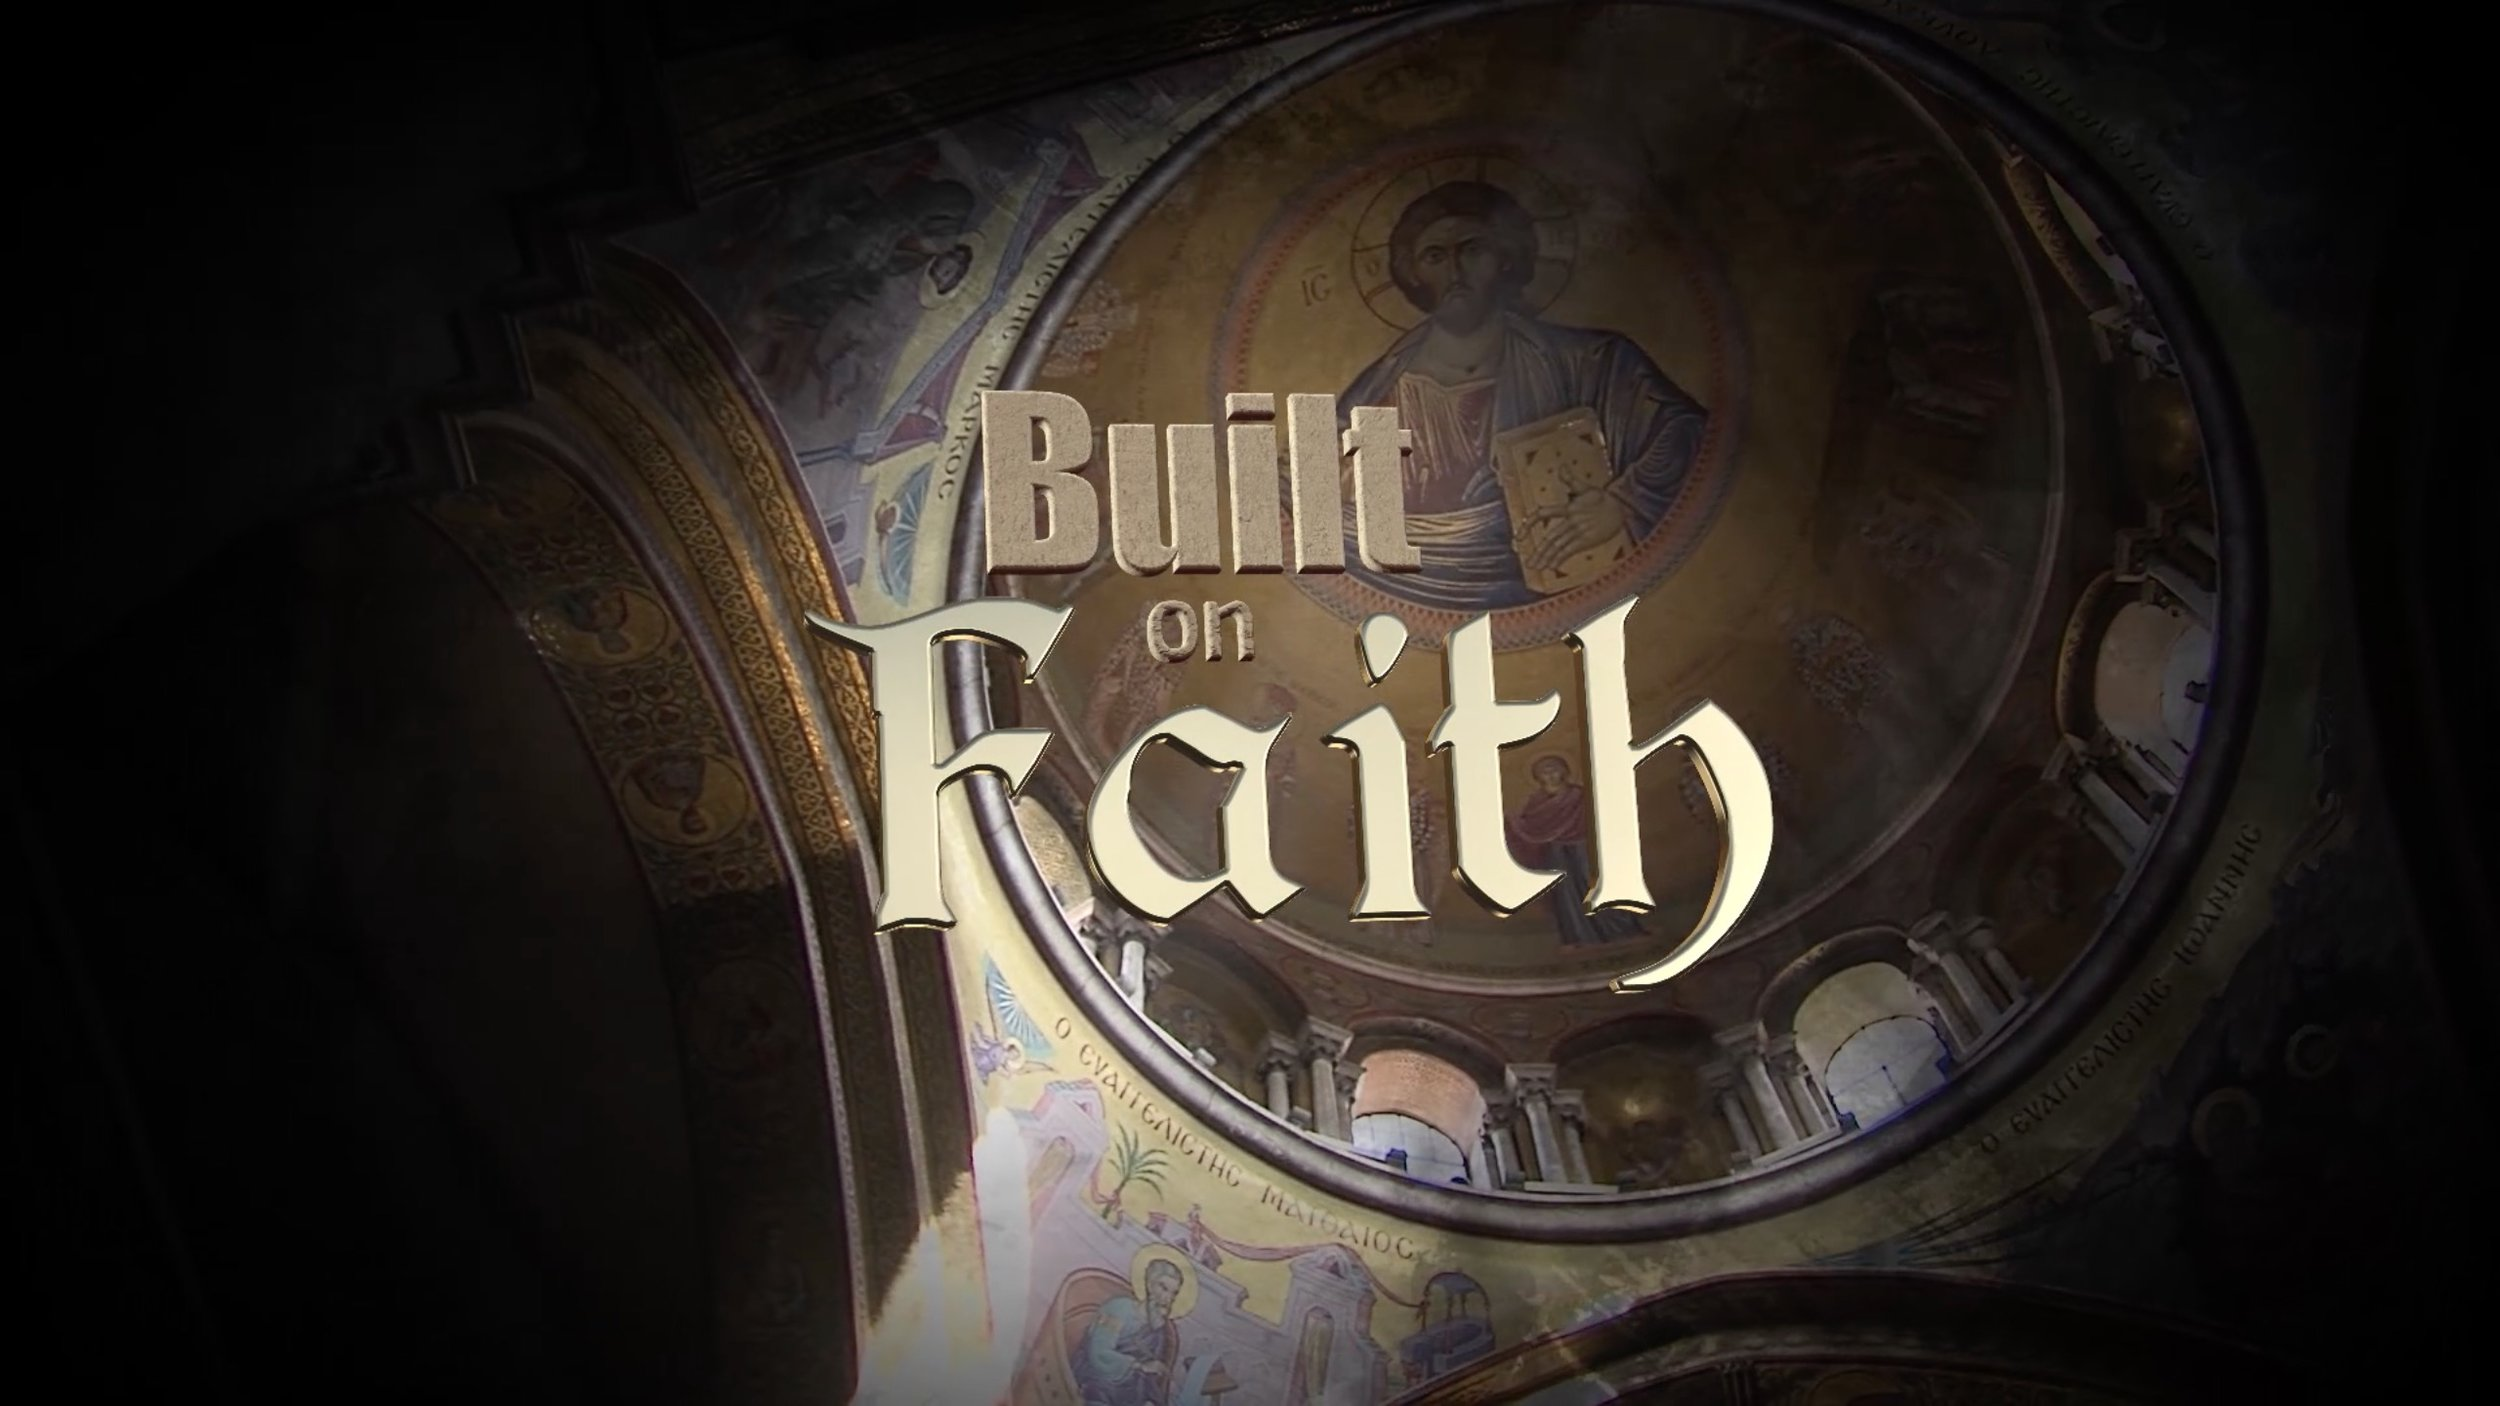 Built on Faith: Church of the Holy Sepulchre - The Church of the Holy Sepulchre in Jerusalem, steeped in tradition and mystery, contains two of the Holiest sites in Christendom: Golgotha, the place where Jesus was crucified, and the empty tomb, the site of the Resurrection.DunnMedia for EWTN